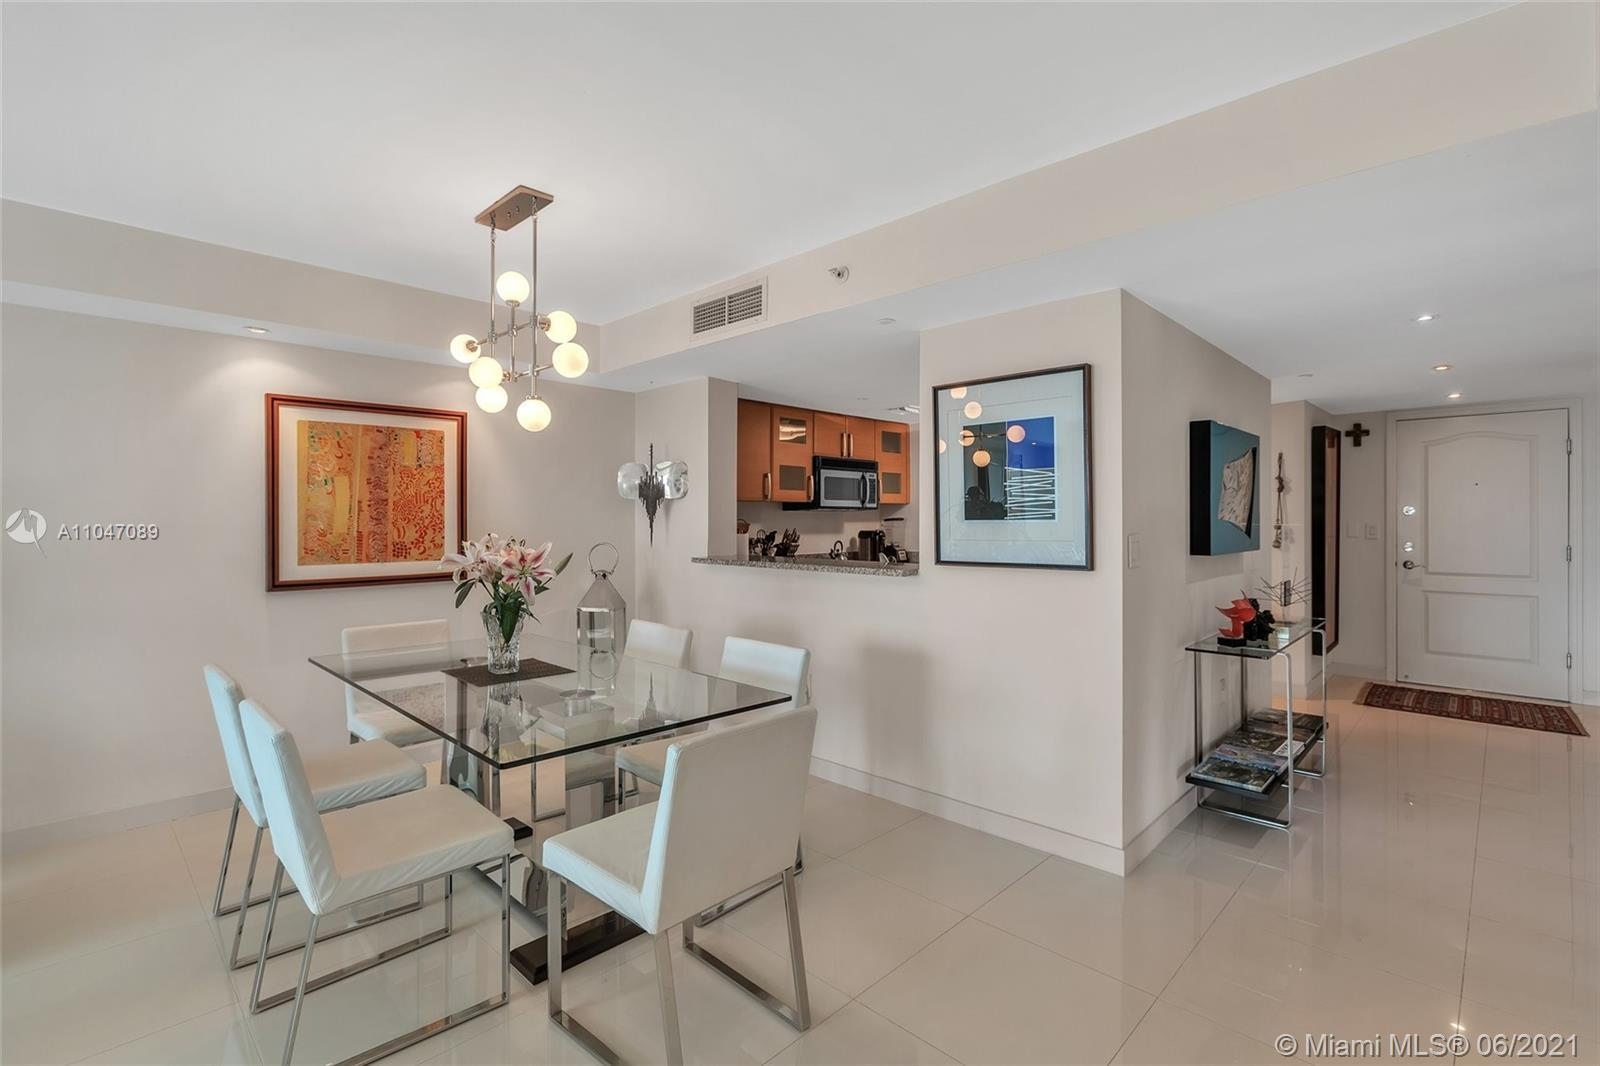 ESPECTACULAR SPACIOUS 2 BED 2 BATH REMODEL, 2 PARKINGS SPOTS AND 2 STORAGE WITH BREATHTAKING VIEWS I